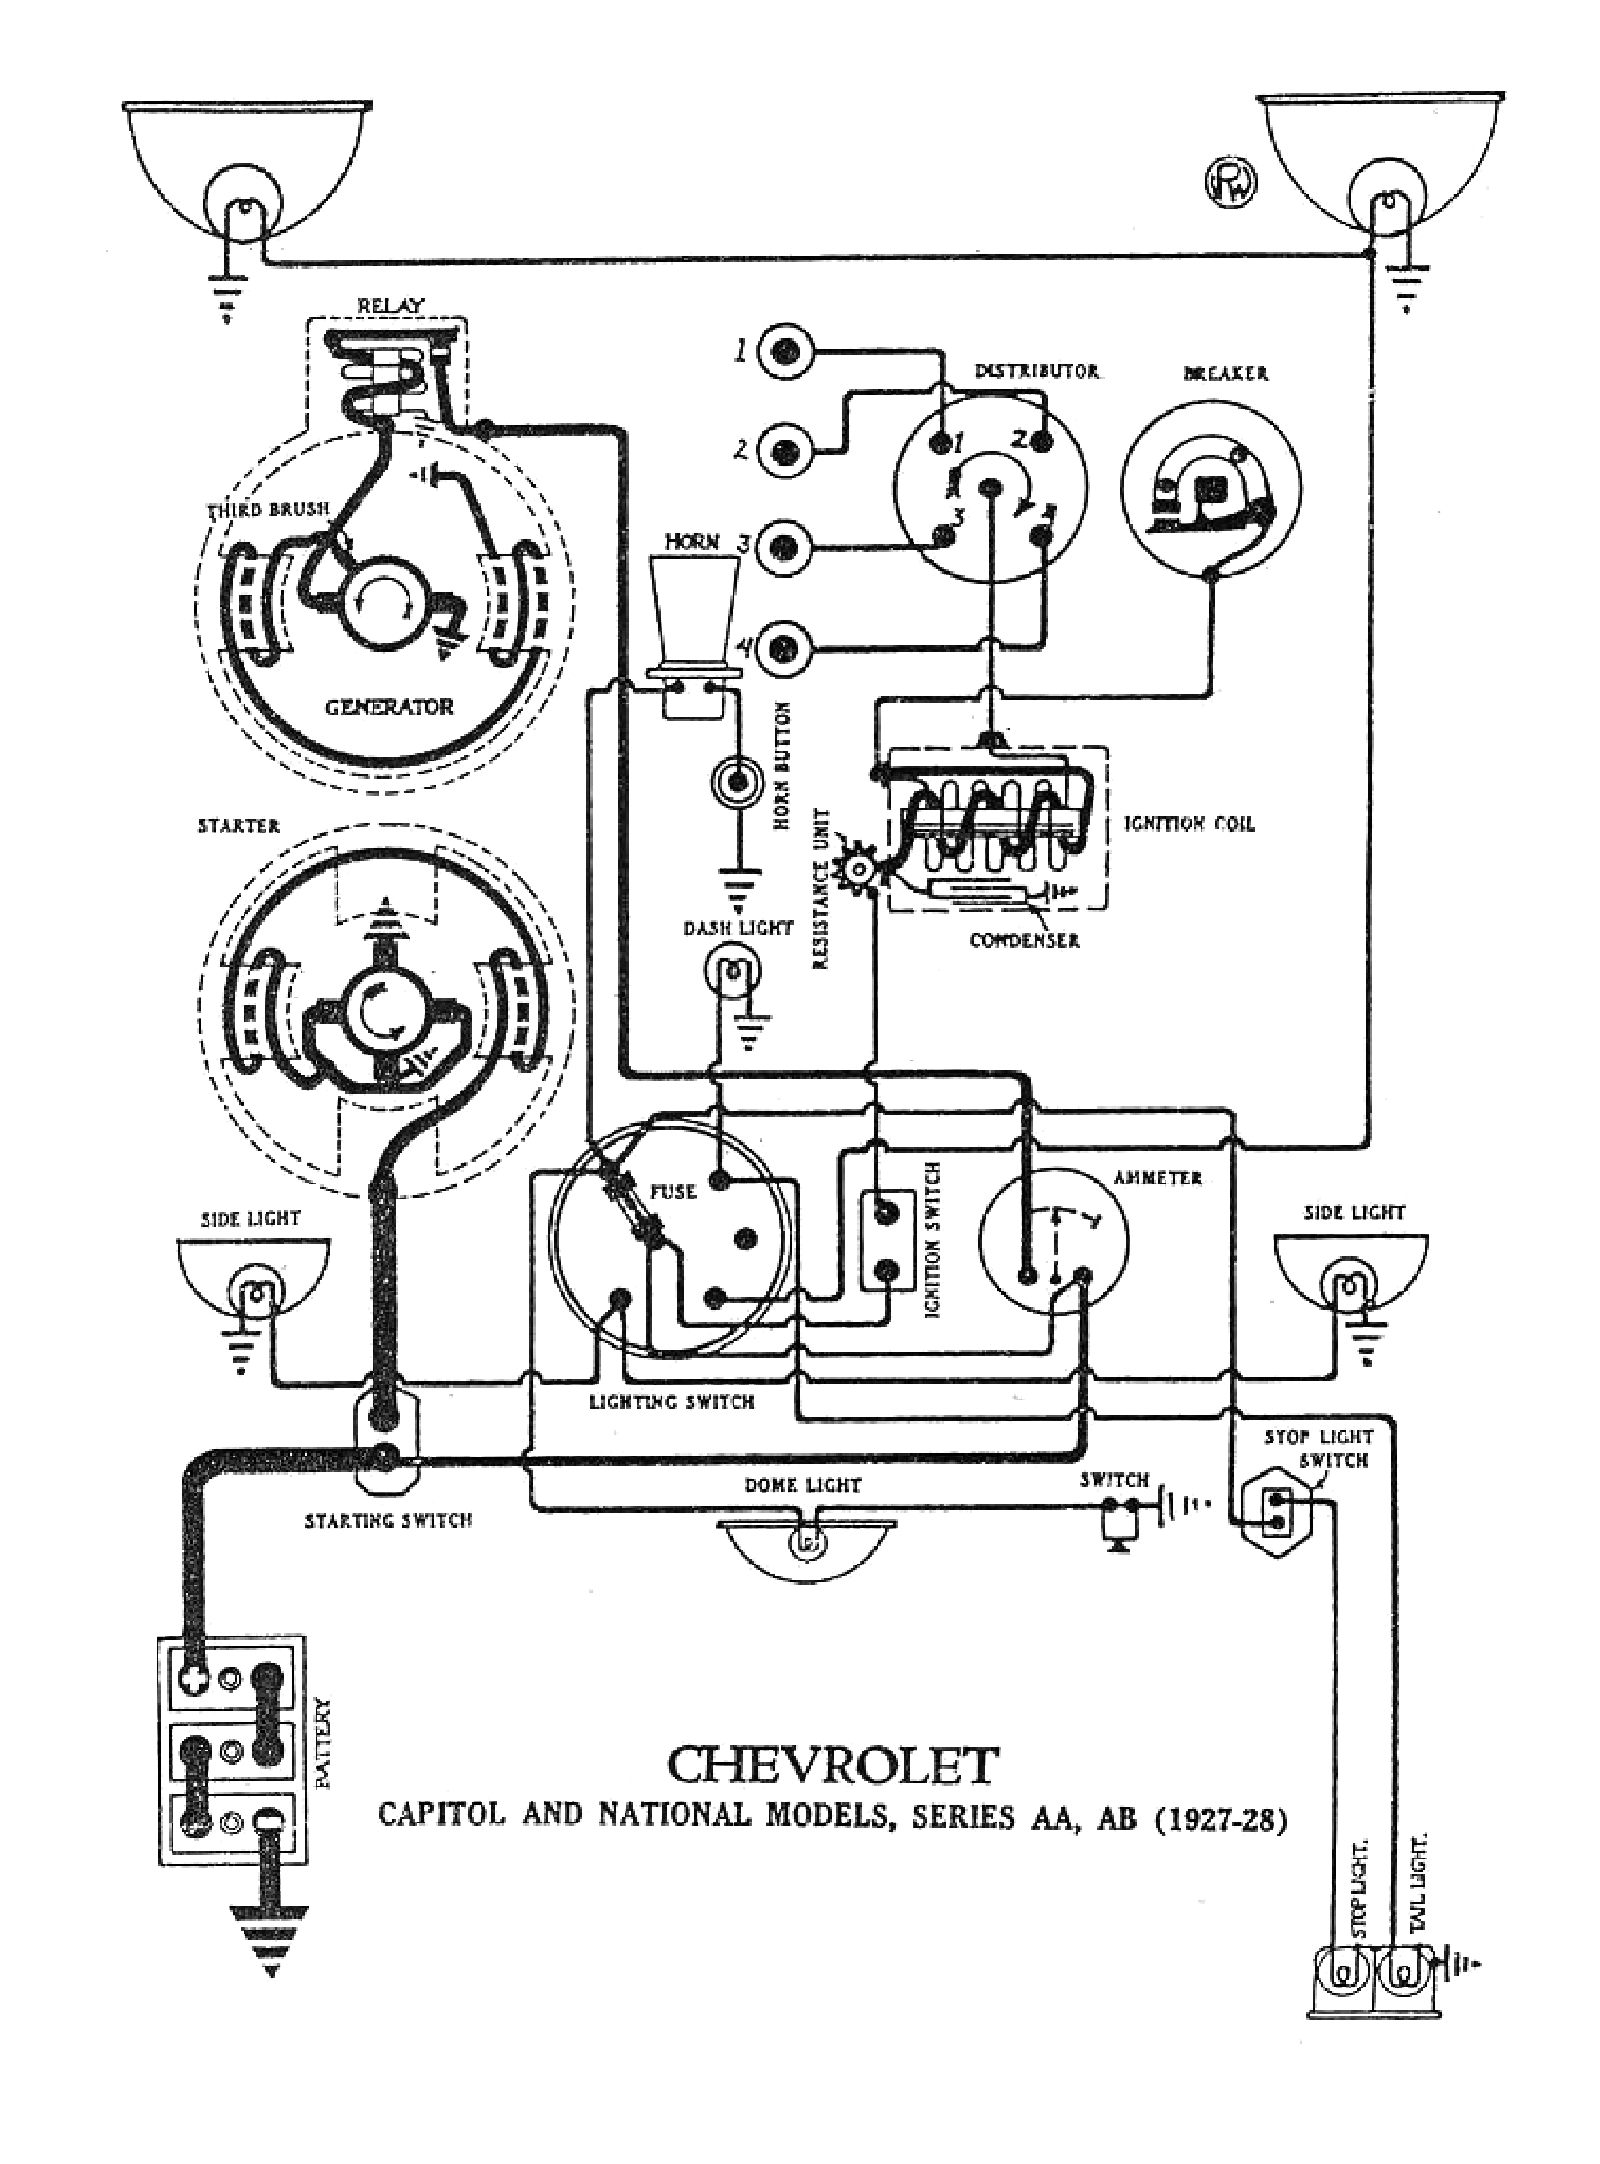 2728wiring chevy wiring diagrams chevy wiring harness diagram at gsmx.co